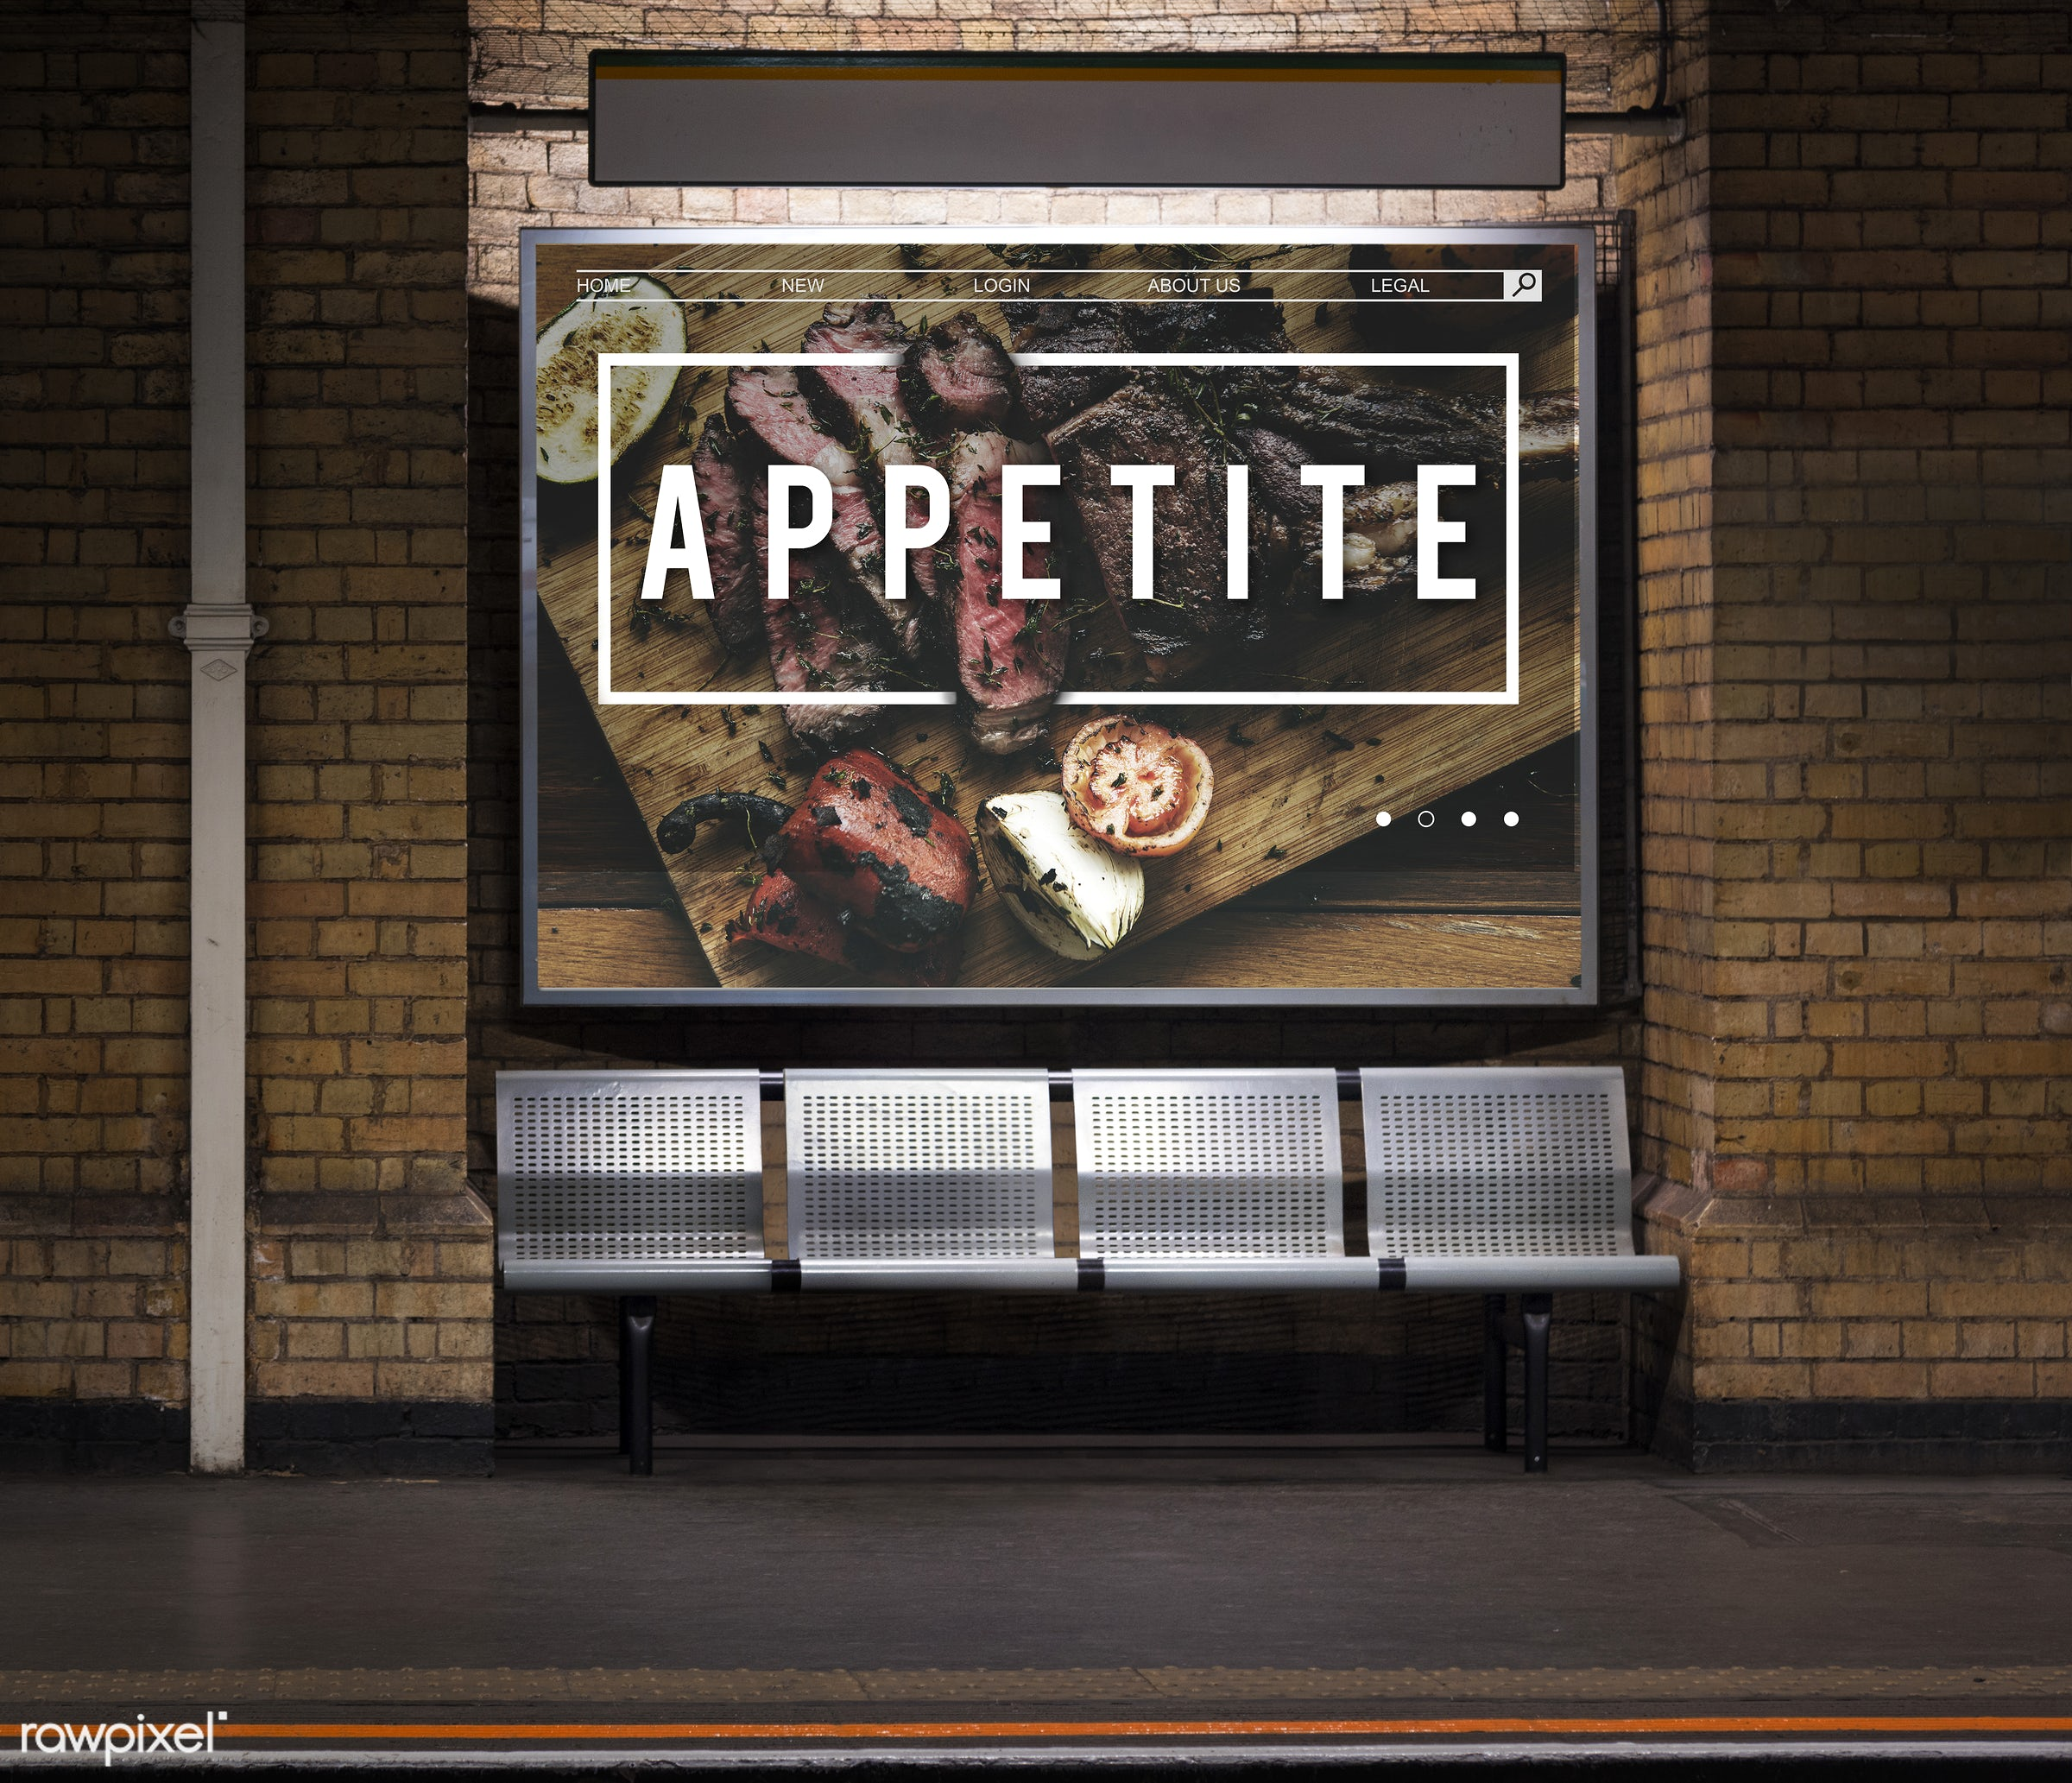 appetite, bricks, brickswall, calories, cuisine, delicious, diet, dining, dinner, drinking, eat well, eatary, eating, food,...